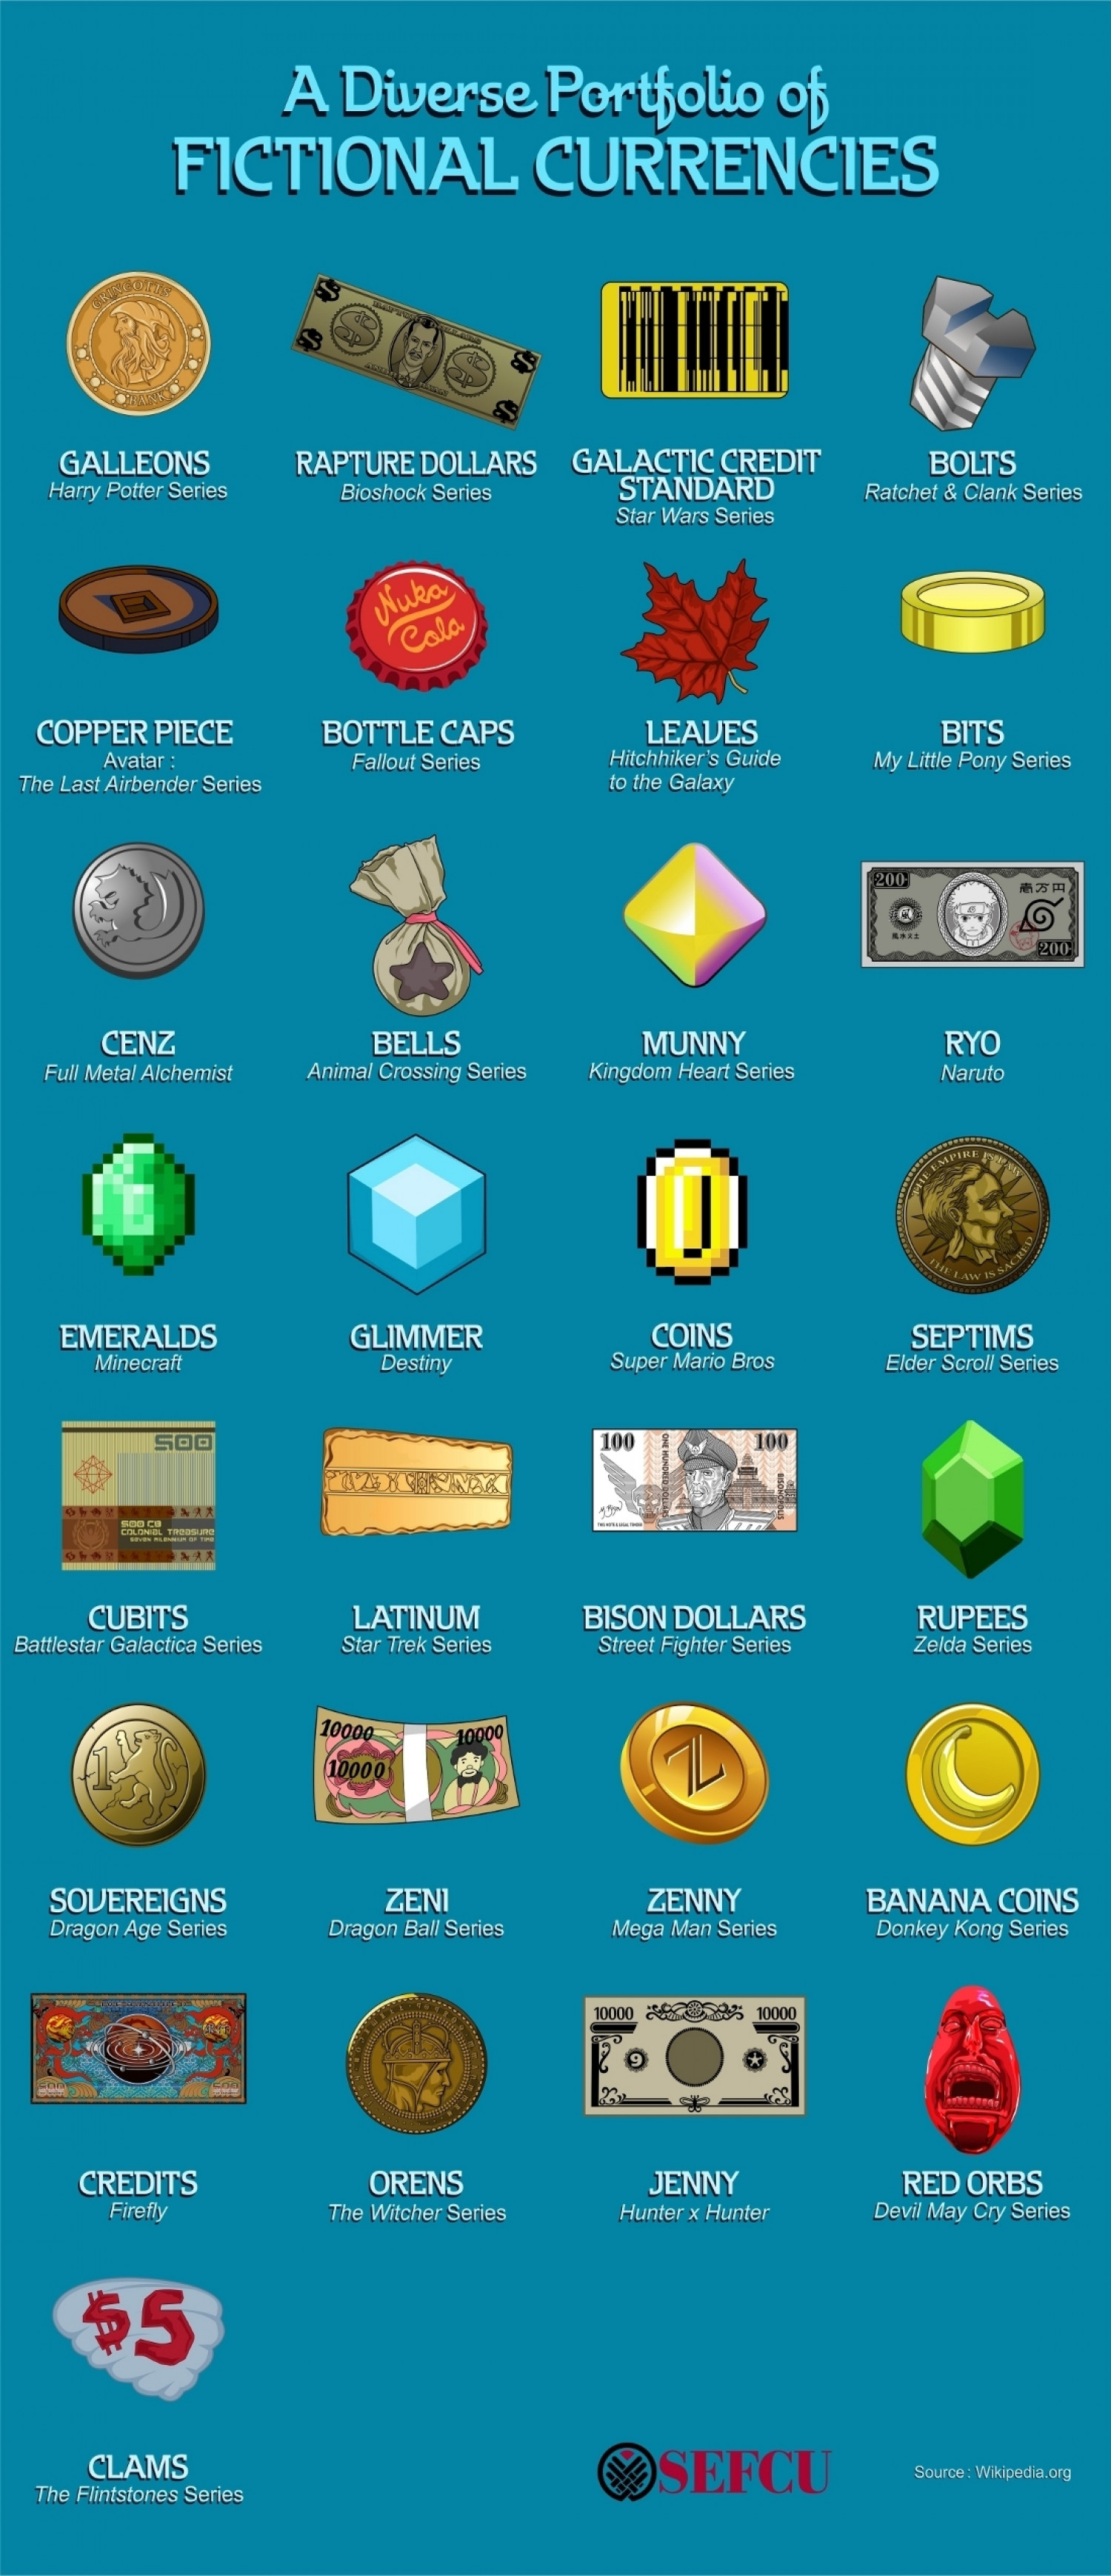 A Diverse Portfolio of Fictional Currencies Infographic